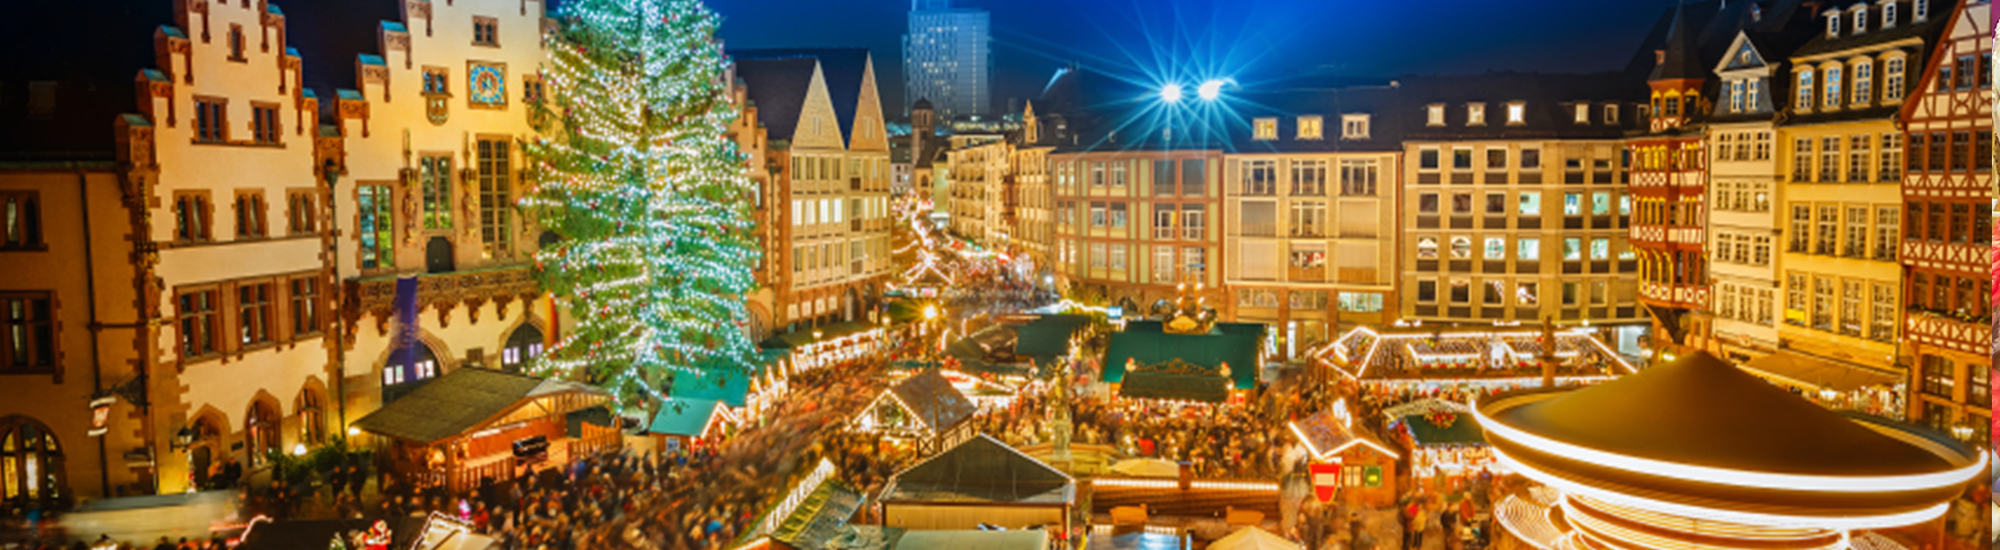 Explore wonderful Christmas Markets and beautiful scenery this winter with Experience Germany Travel